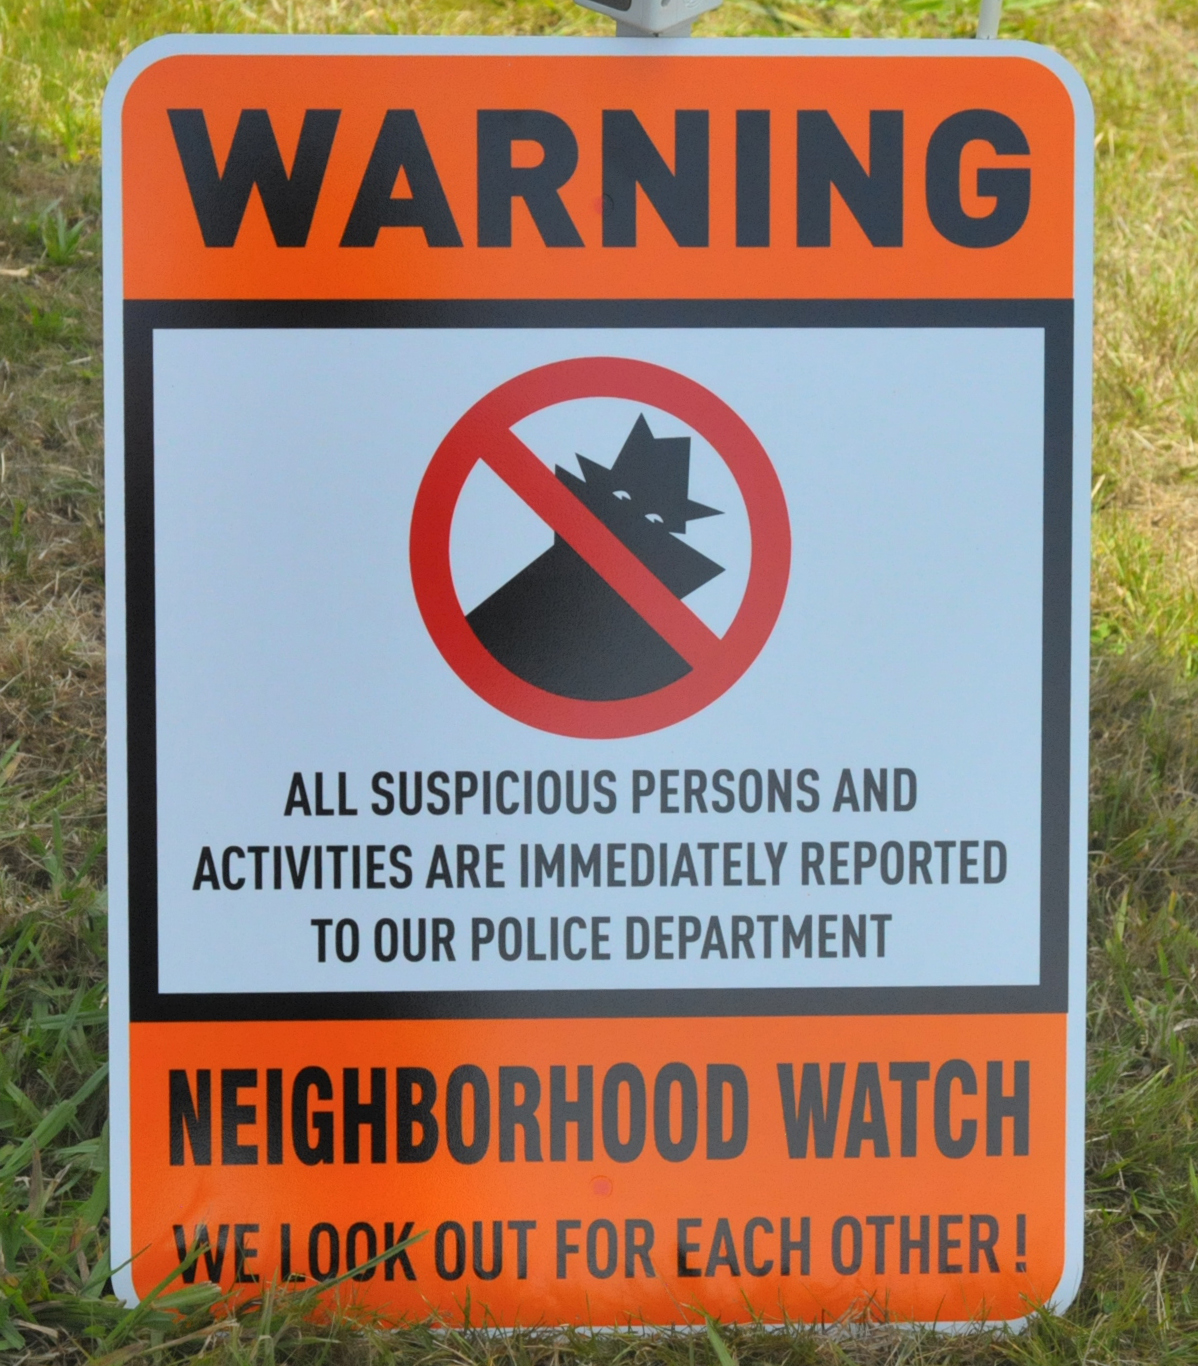 https://upload.wikimedia.org/wikipedia/commons/e/eb/Neighborhood_Watch_Sign.jpg